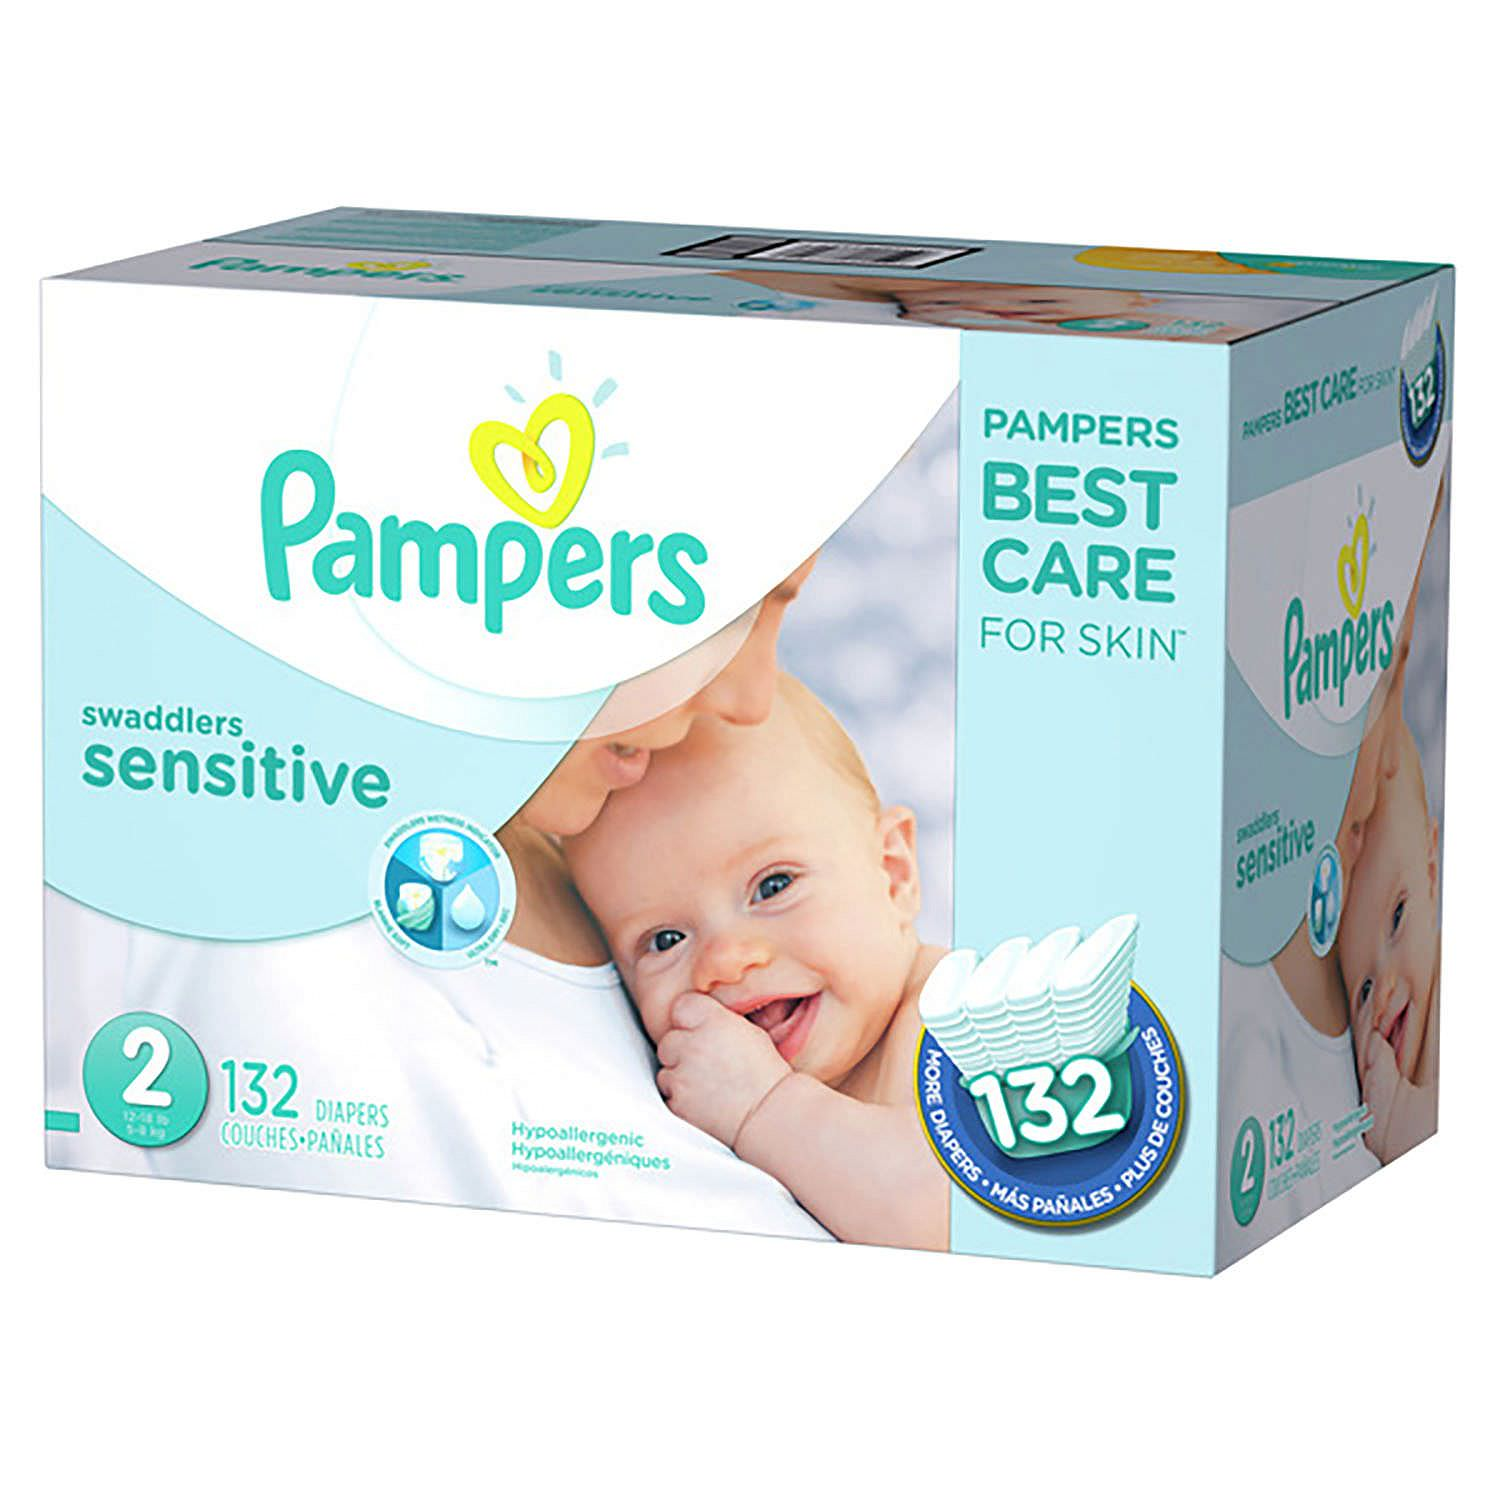 Pampers Swaddlers Sensitive Diapers Size 2 -132 ct. (12-18 lb.) by Unbranded